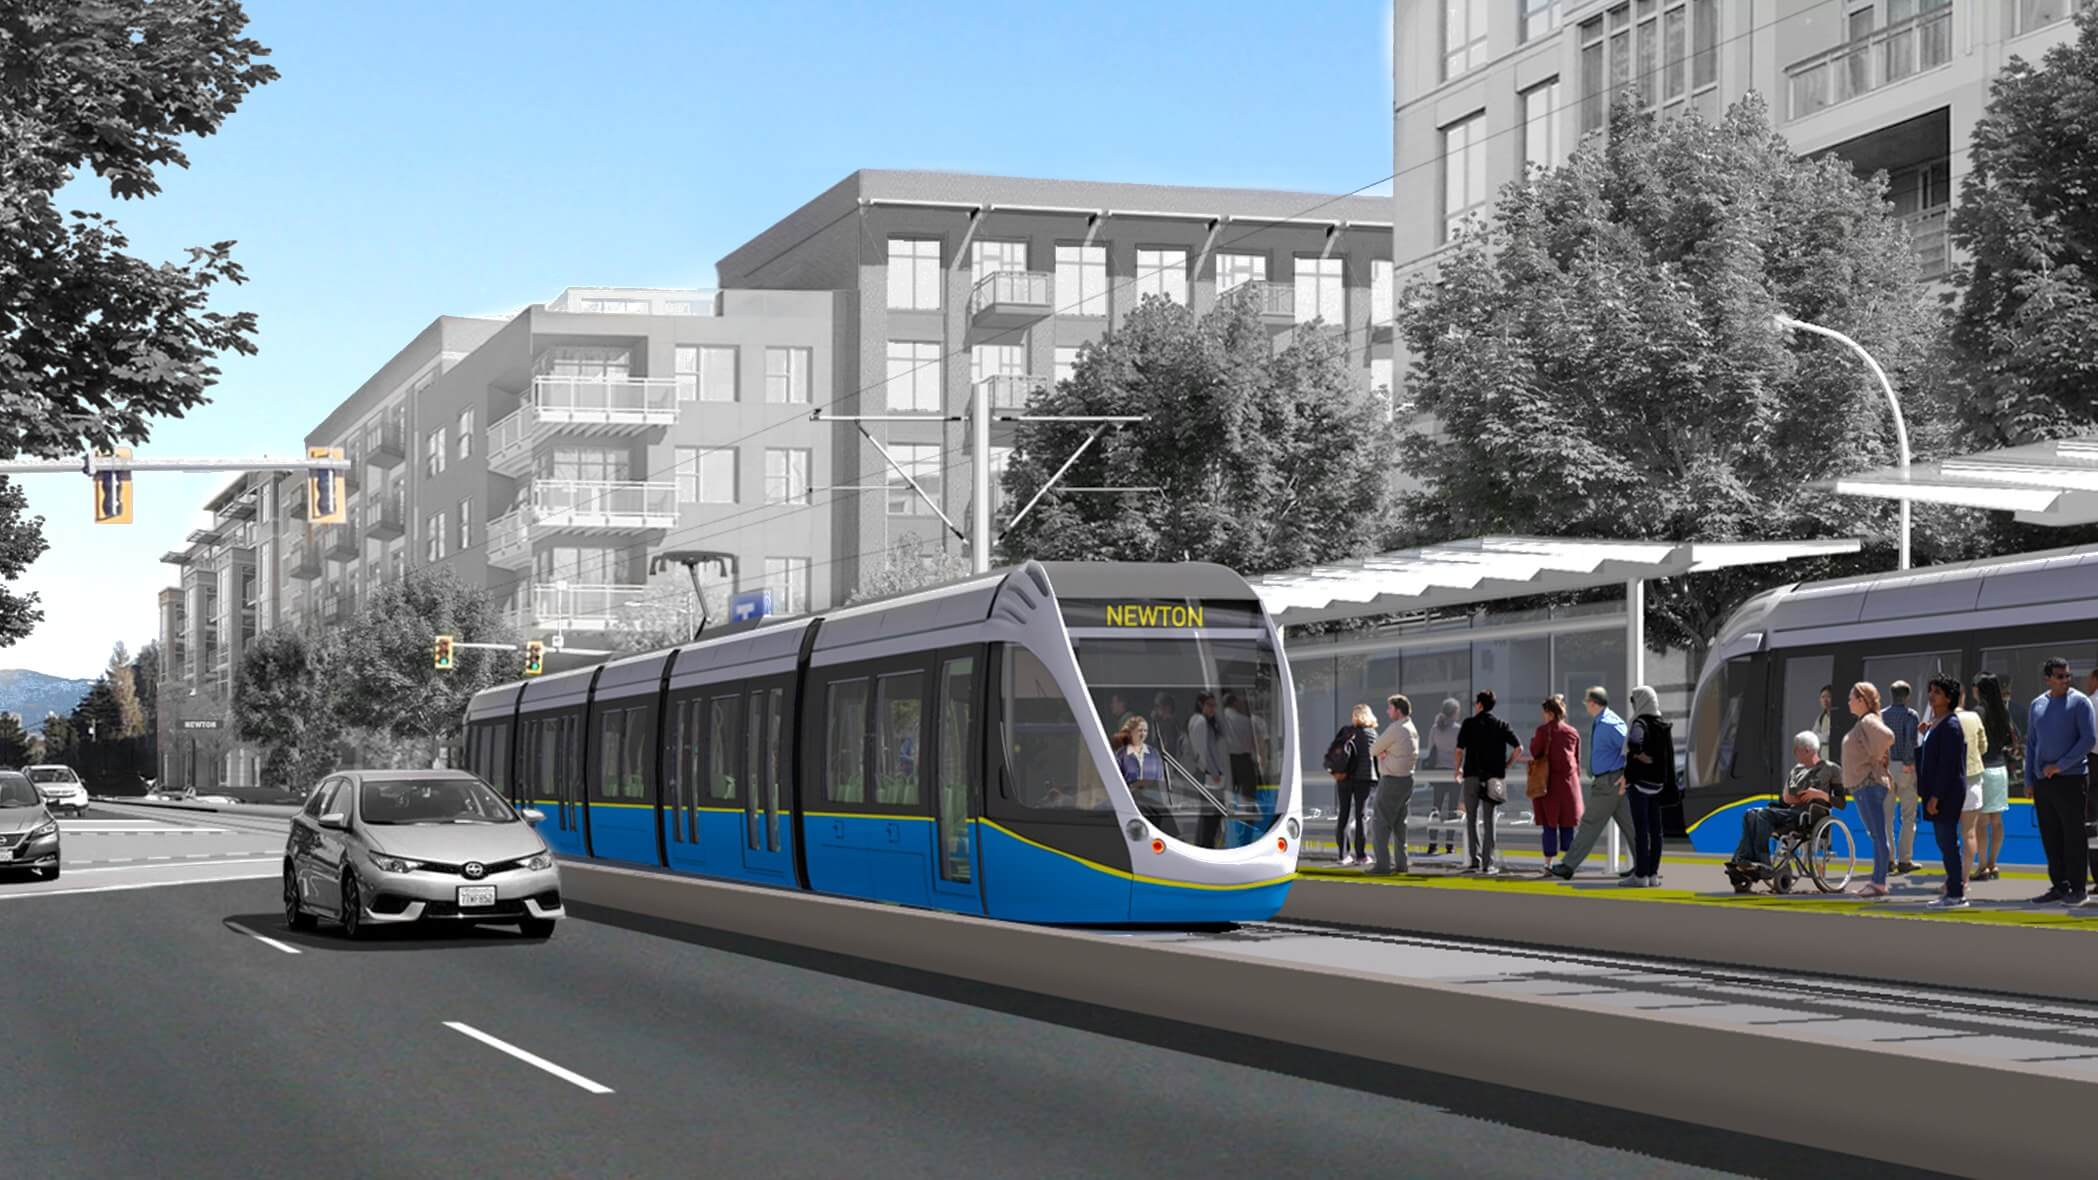 Proposed Light Rail Transit is actually deterring developers, not attracting them.